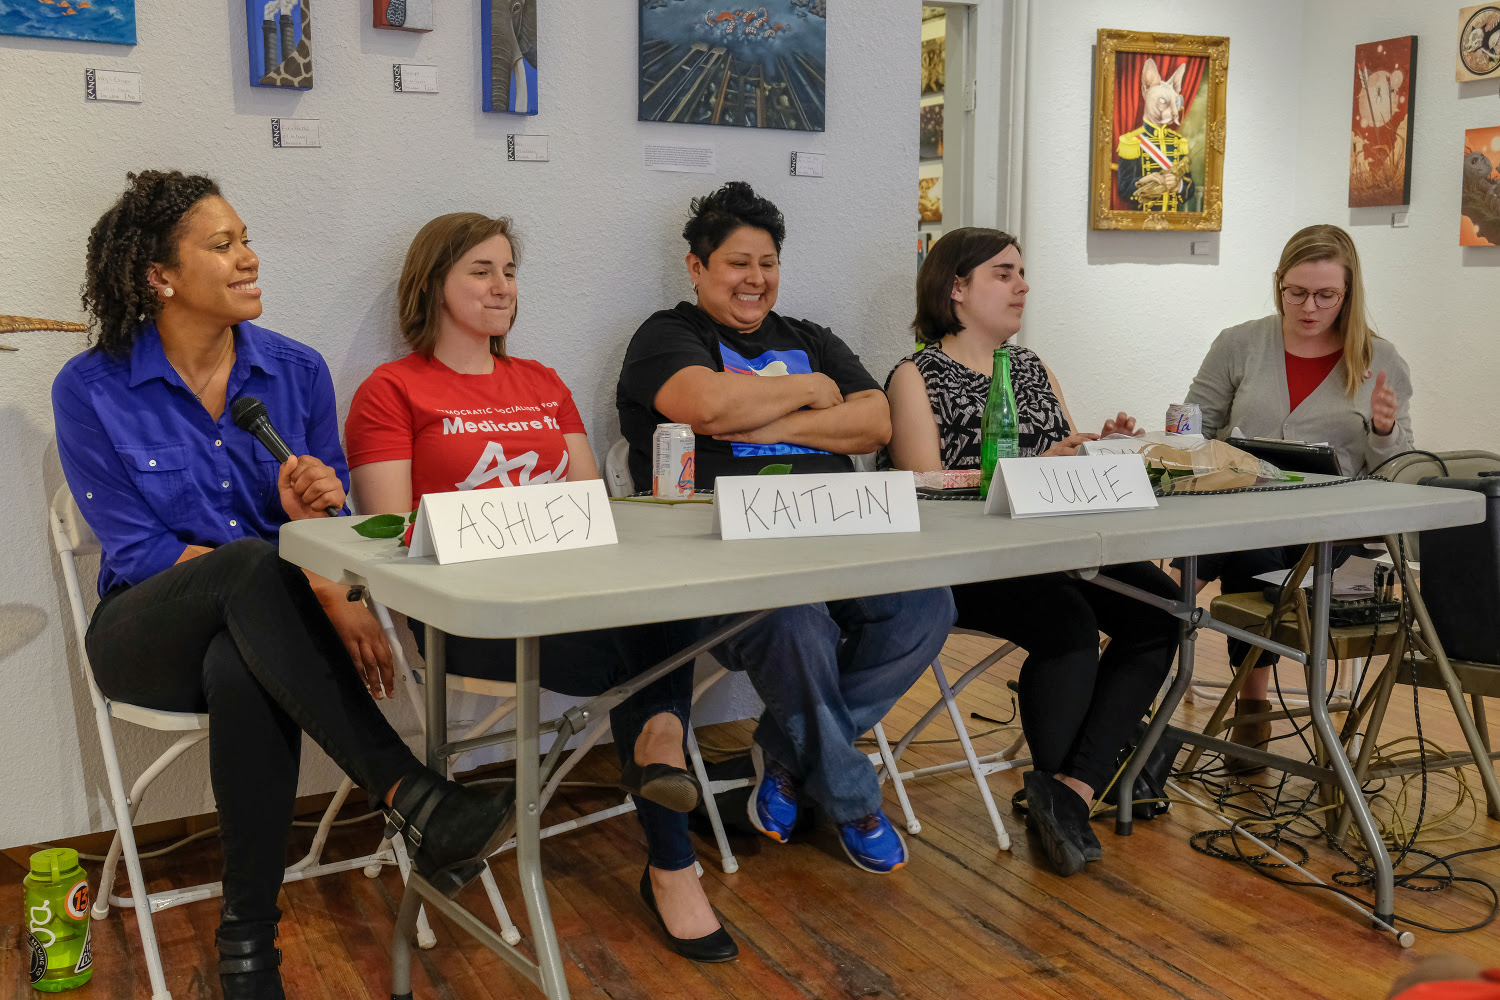 Women's Day Panel at Kanon Art Space. Photo by Justin Morgan.